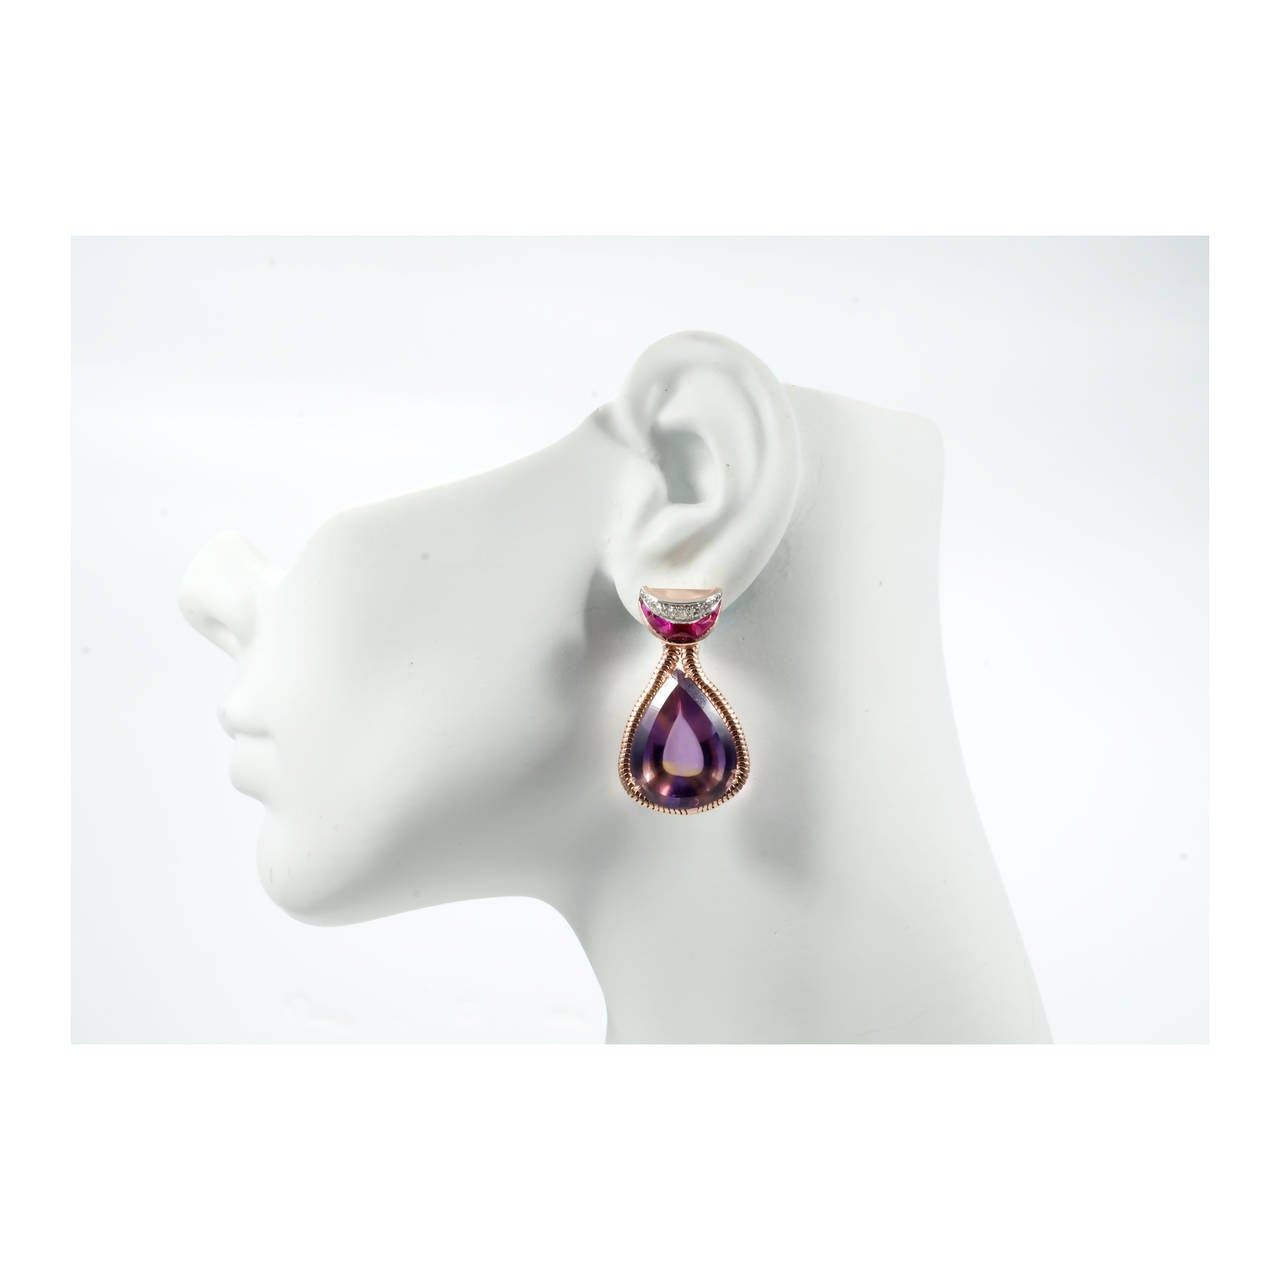 Unique Pear Shaped Amethyst Citrine Gold Dangle Earrings For Sale 2